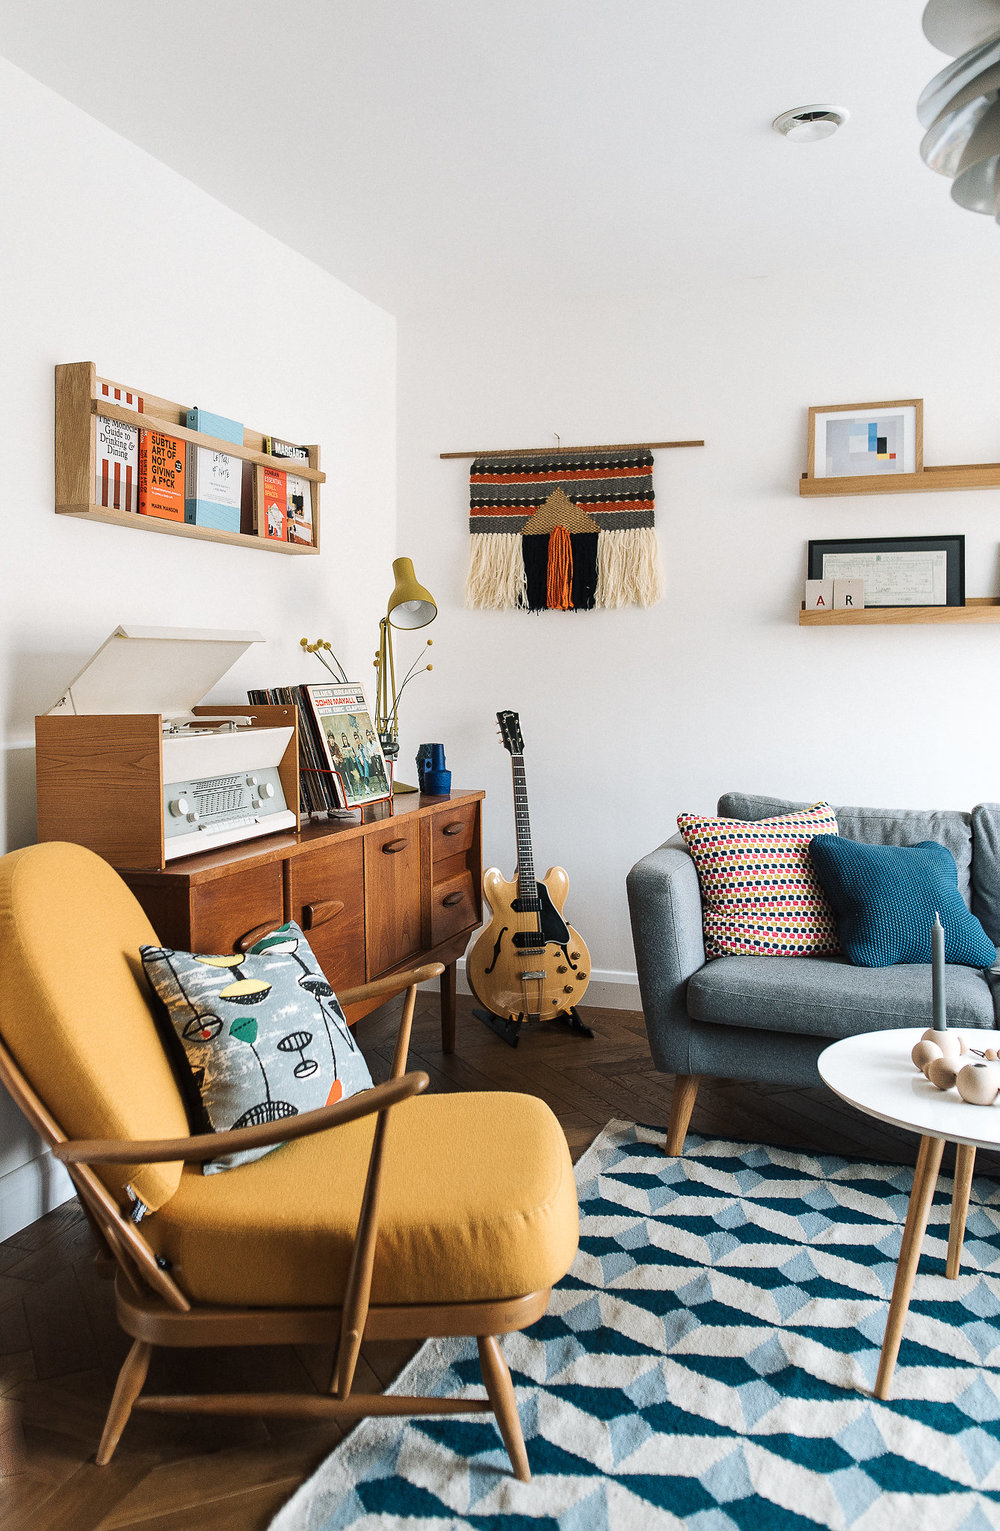 Home tour with Racheal & Alex of Object Style